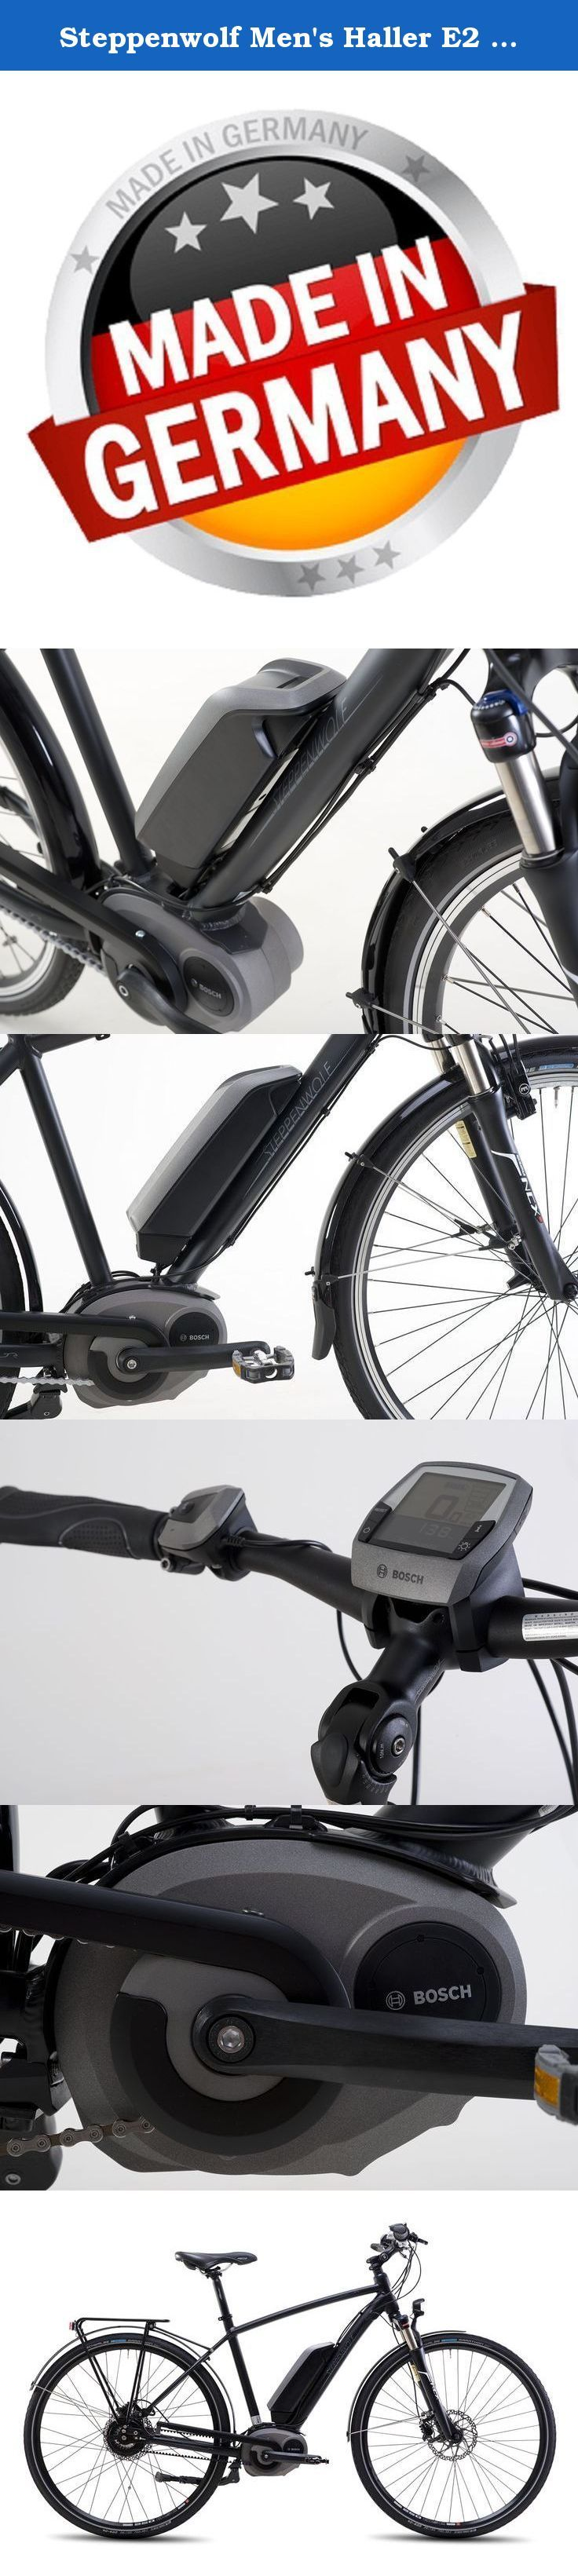 Steppenwolf Men's Haller E2 CDX Electric Bicycle, Shadow Matte Black, 23 in. Simple and fast is the best description of the haller e! long distances are effortlessly overcome with its powerful engine. Bosch means abundant 400 watt battery, making our haller e one of the quality pioneers of emission-free motorized mobility. Also available with low-maintenance gates belt drive and wave SWE055-5801H-1 with low step. These bicycles come 99% assembled. Images reflect frame and color only…